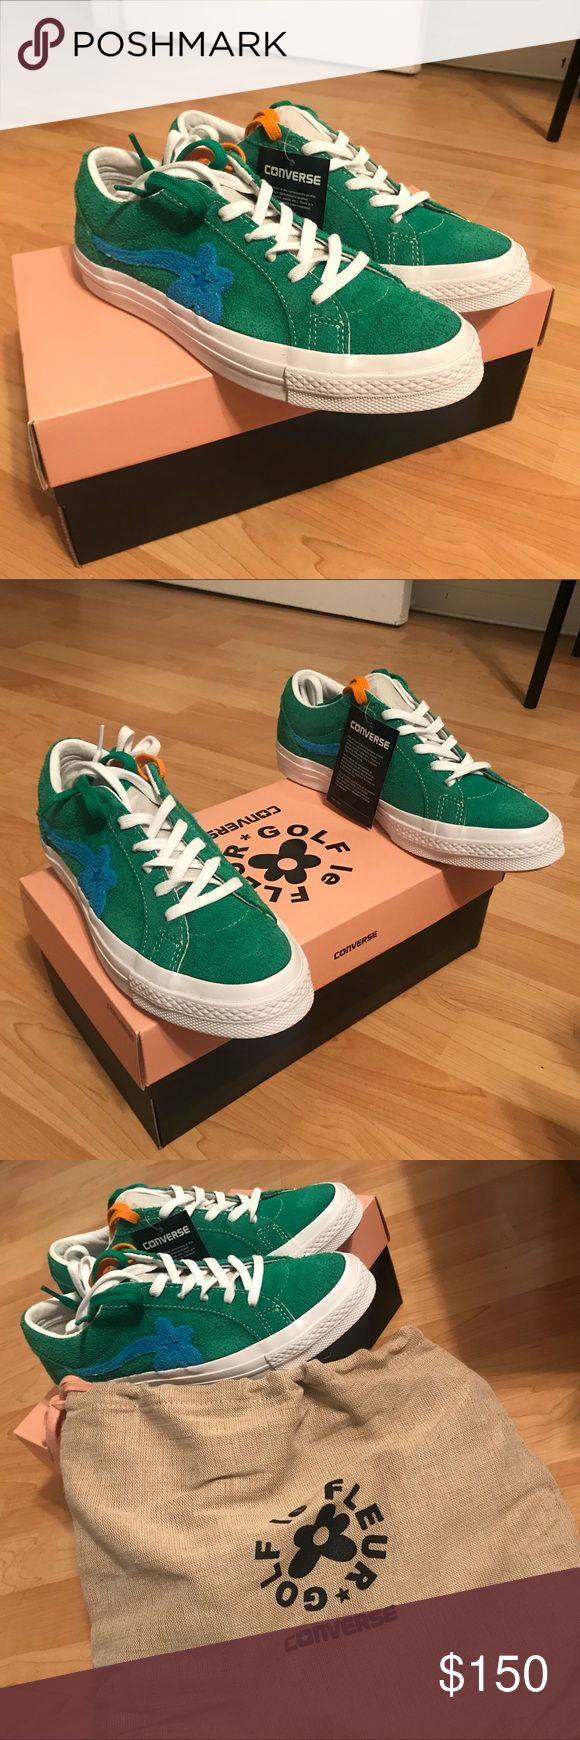 Converse Golf Le Fleur Unos Jolly Green BRAND NEW WITH TAGS!! Tyler the Creator x Converse Golf Le Fleur Unos in Green and Blue! These are a MENS 5.5/WOMENS 7.5 but everyone online says these run a half size to full size bigger so I am listing as a WOMENS SIZE 8!!! Comes with original box and dust bag. Never worn ever!! Converse Shoes Sneakers